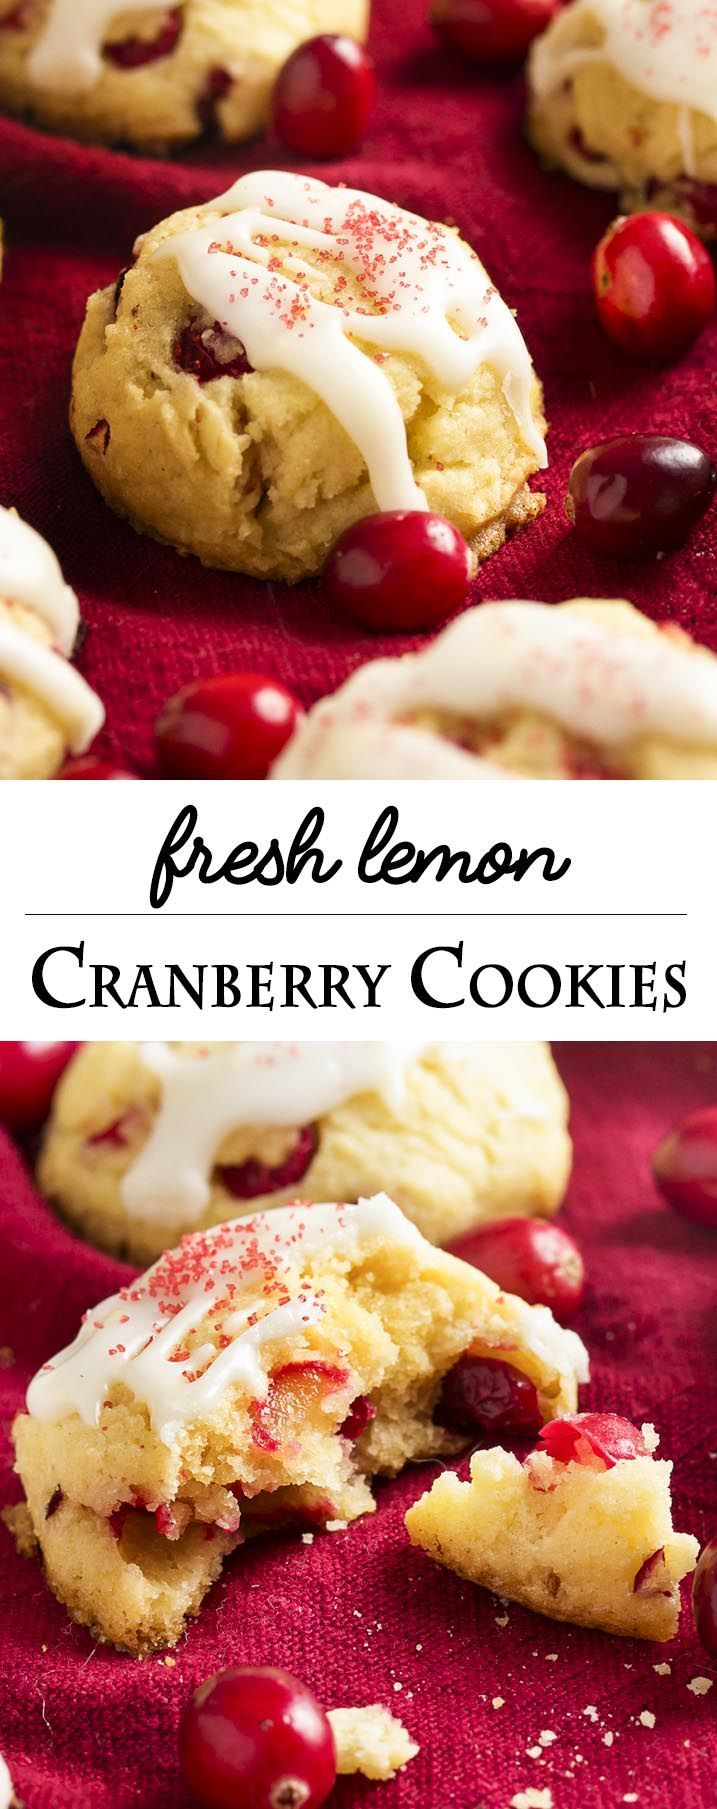 The fresh cranberries in these fresh cranberry cookies give them such a bright and zingy flavor which is completely different from dried cranberries! Don't just use fresh cranberries for sauce. Make cookies! | justalittlebitofbacon.com